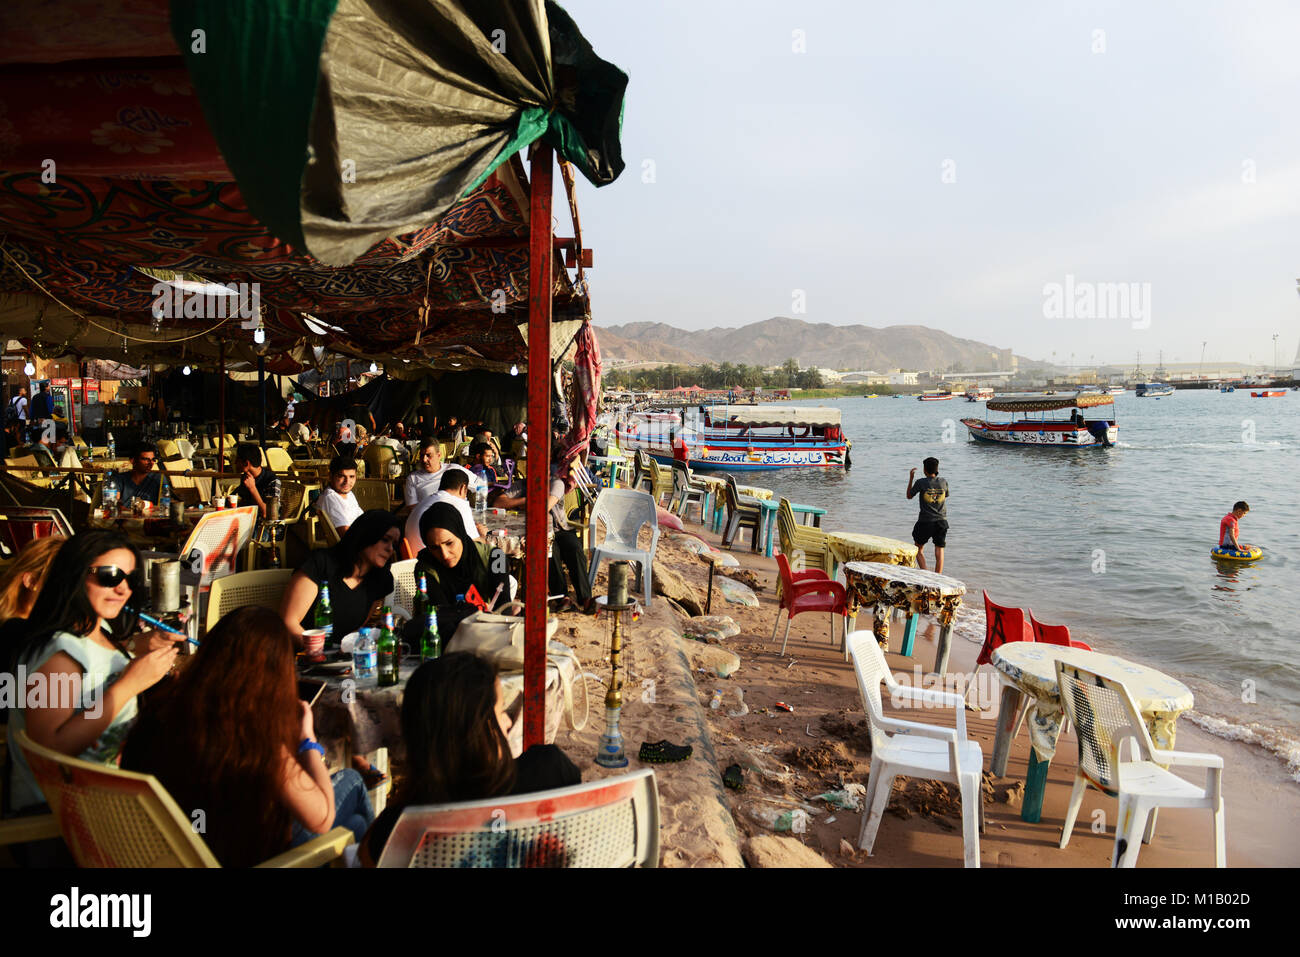 Busy cafes on the beach in Aqaba, Jordan. - Stock Image